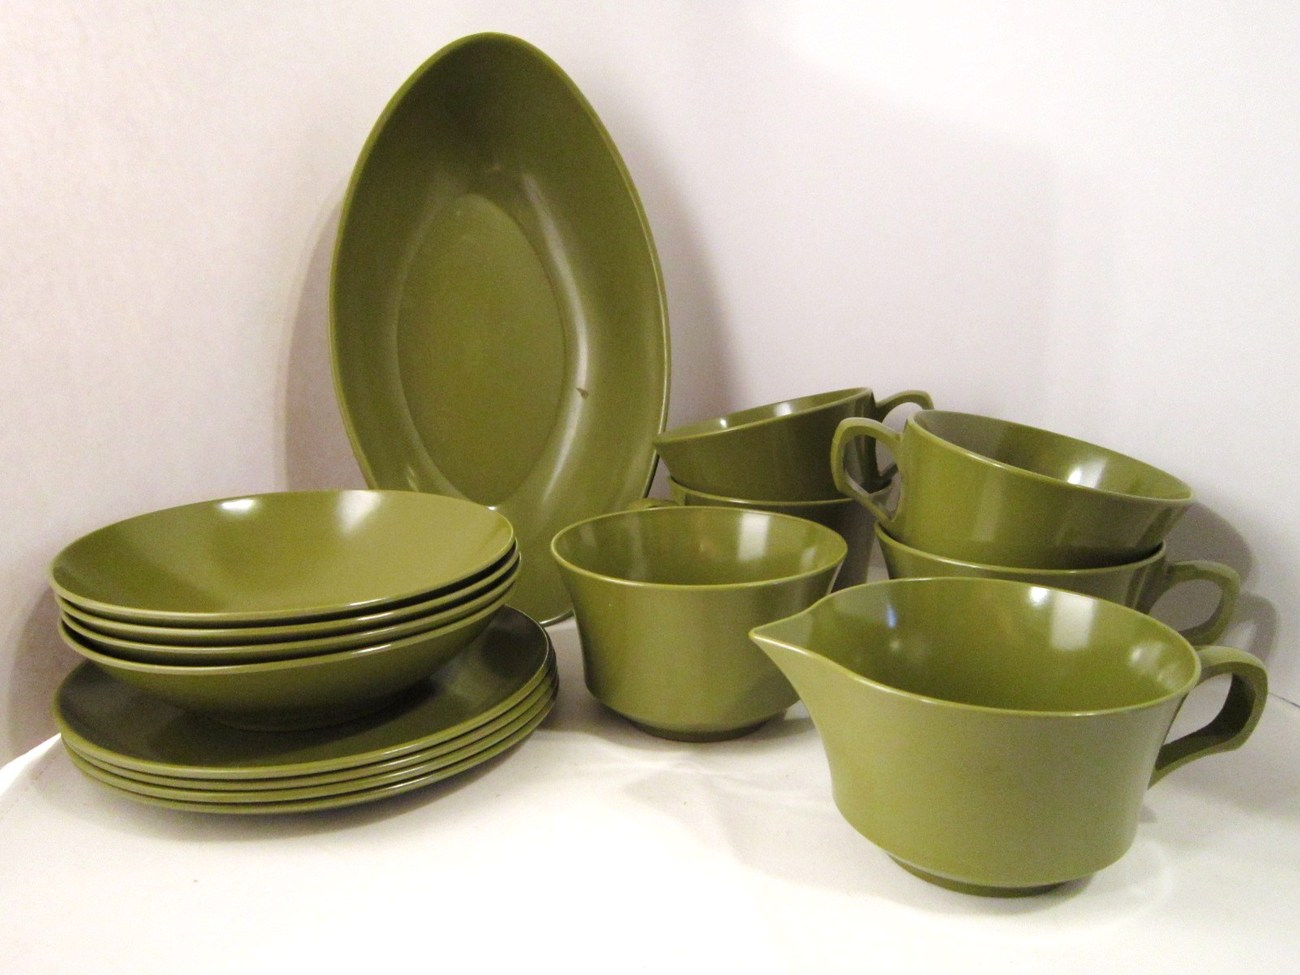 15 piece set allied chemical melamine dishes avocado green for Cuisine melamine